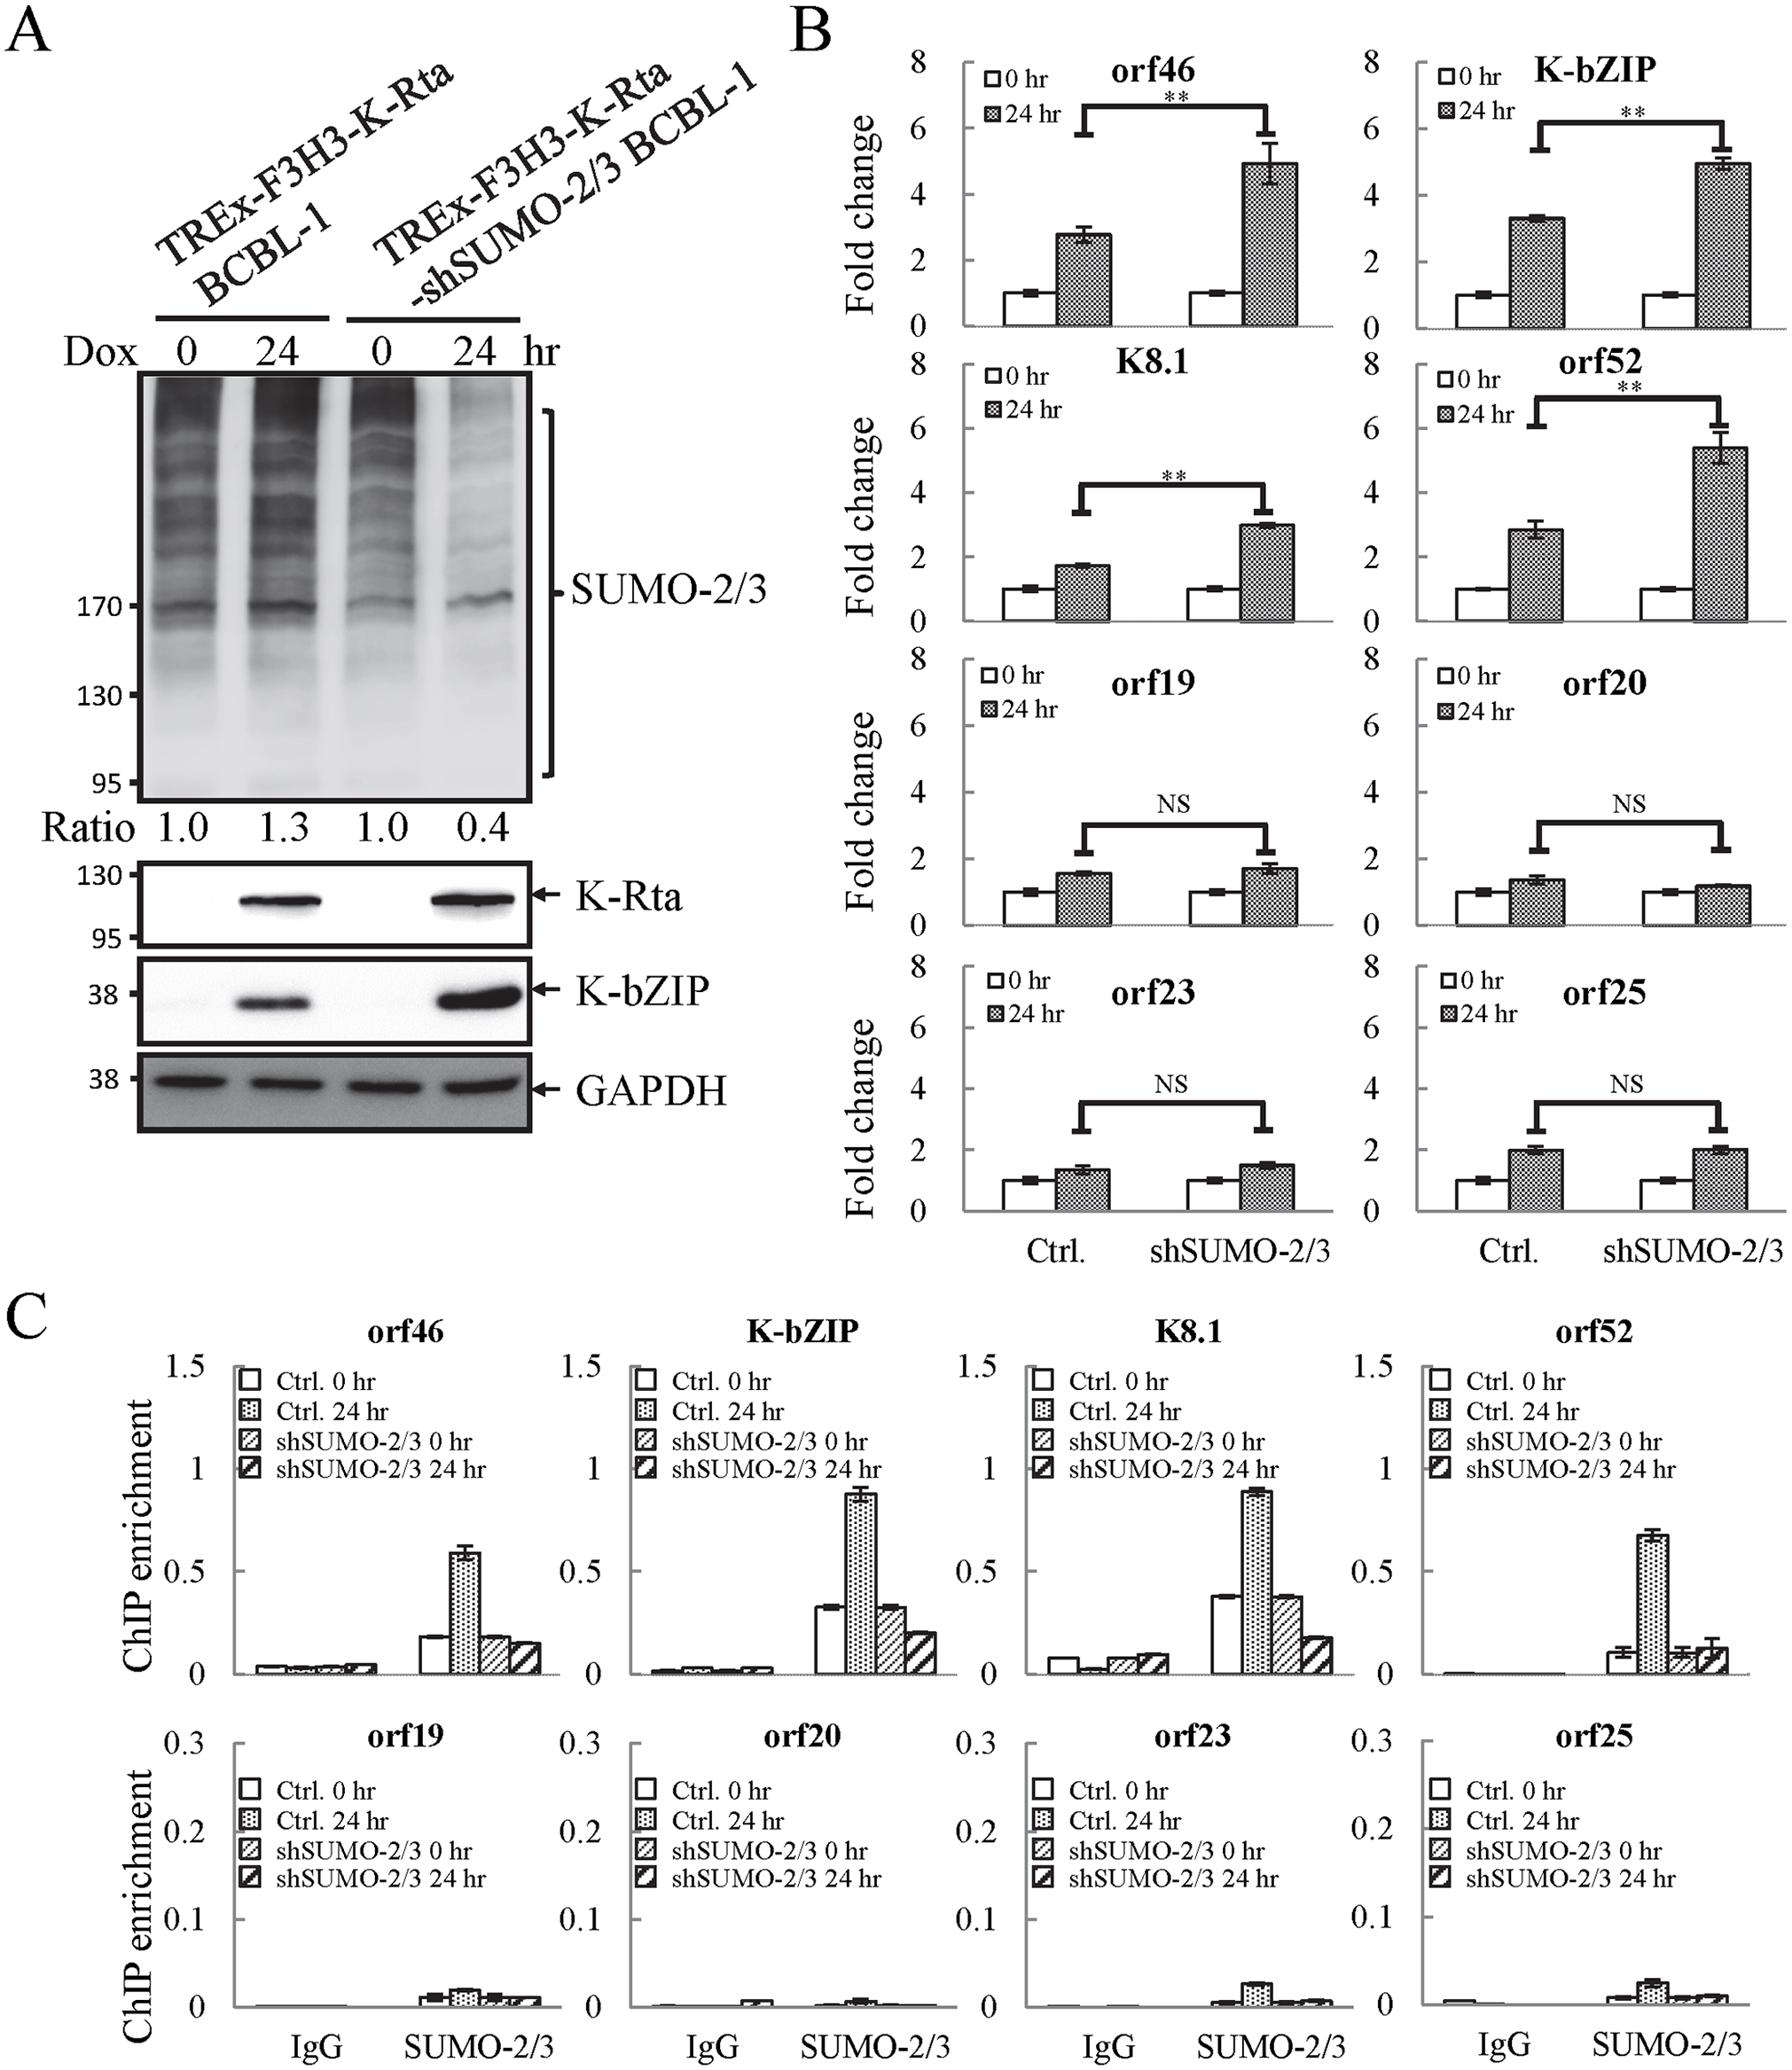 Knockdown of SUMO-2/3 increases transactivation of KSHV lytic genes and reduces SUMO-2/3-specific modification located in the high SUMO-2/3 enrichment region during viral reactivation.